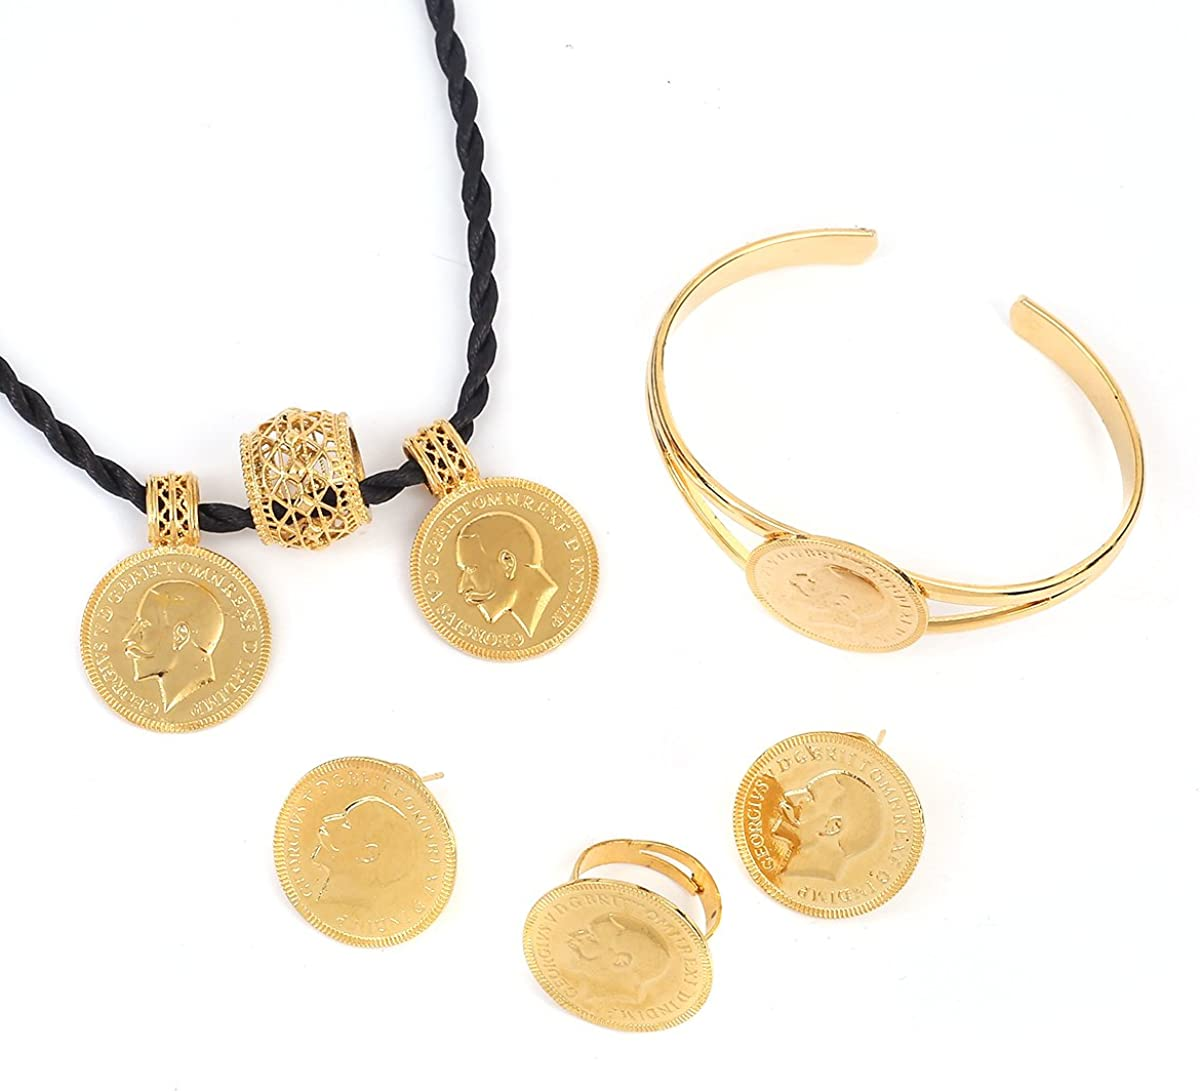 African 24K Gold Coin Jewelry Sets Ethiopian Coin Set Necklace Jewelry